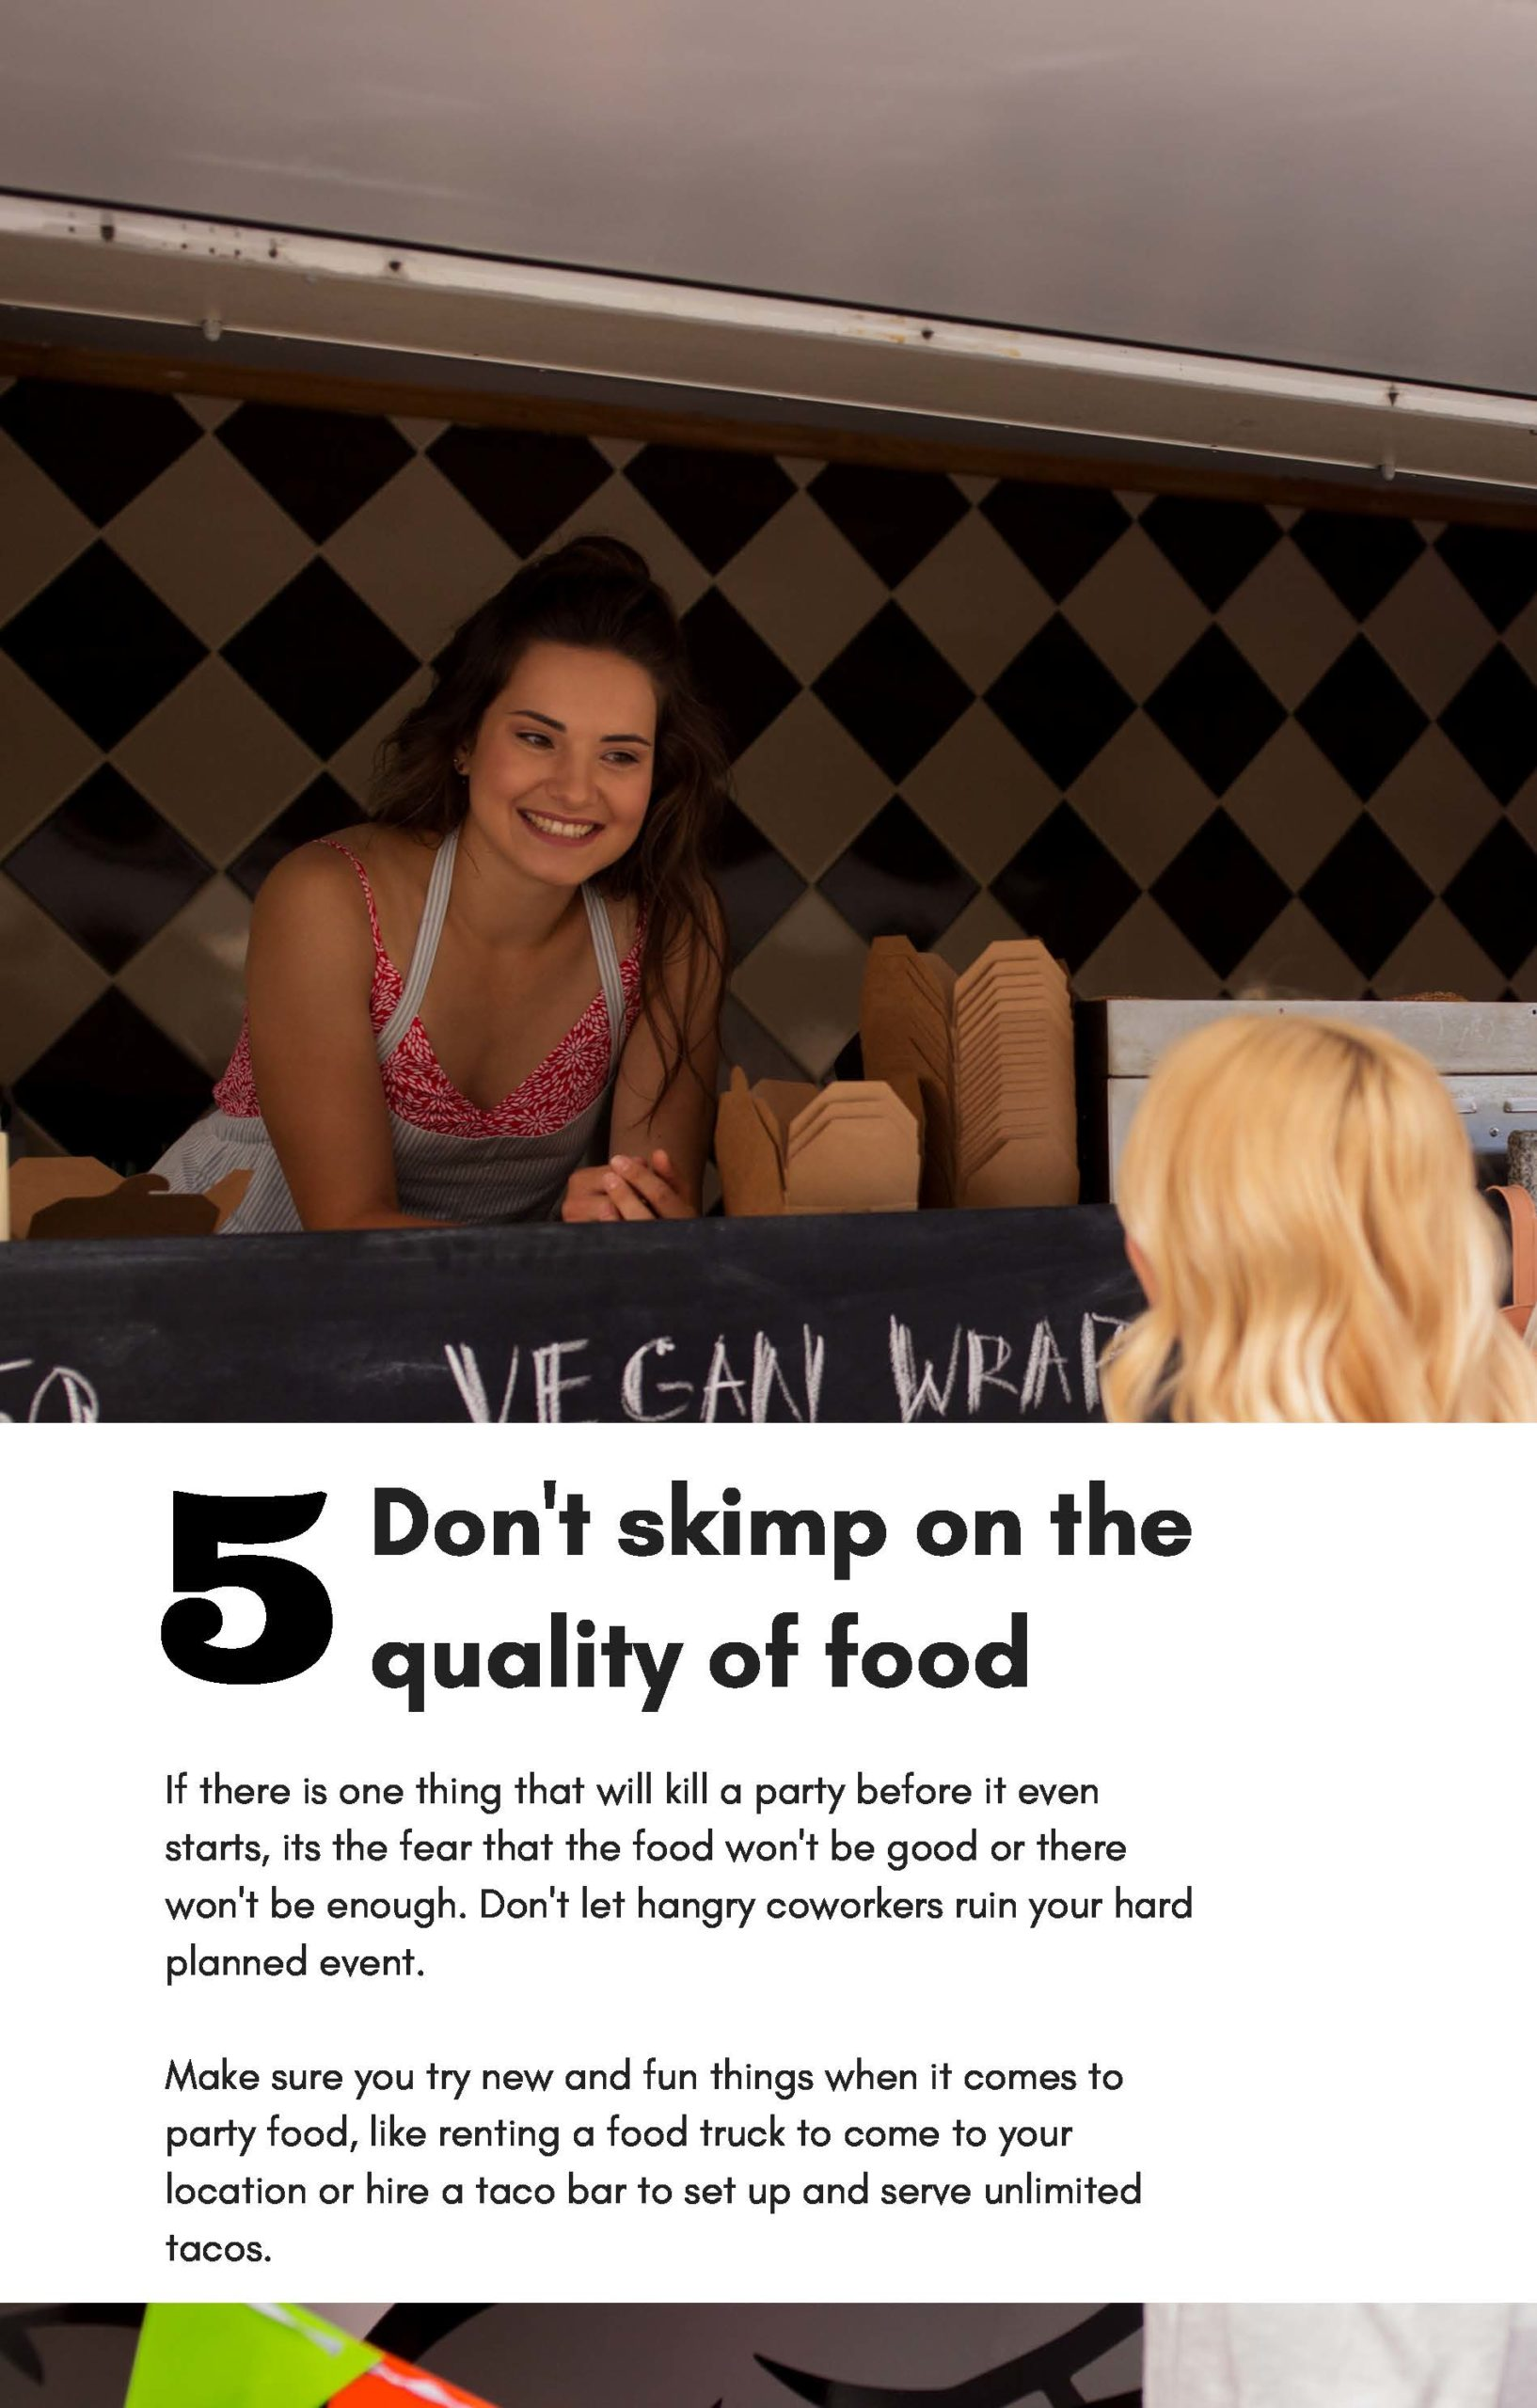 Don't skimp on the quality of food